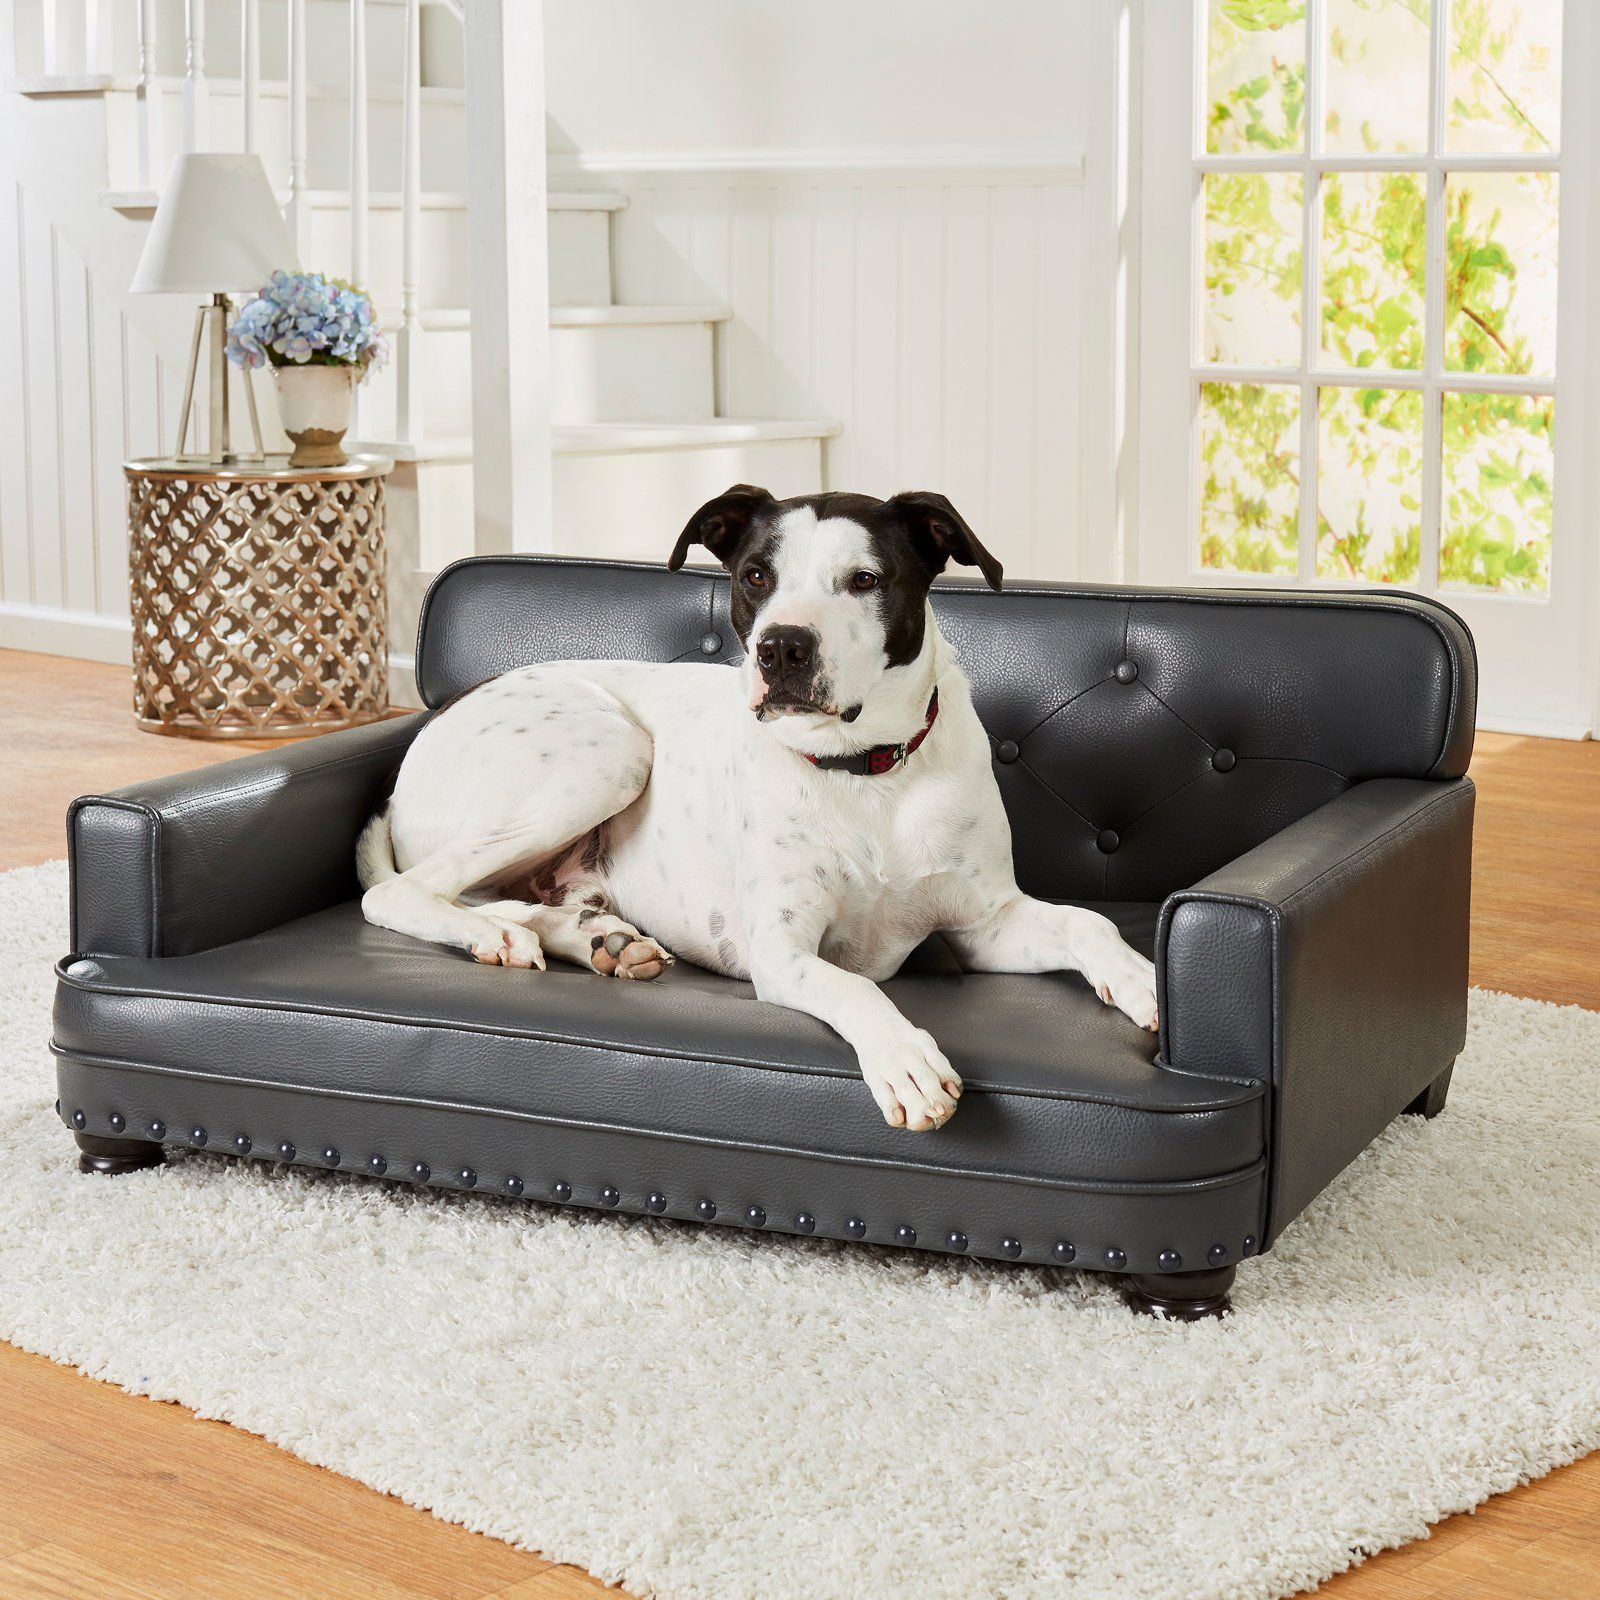 Superb Enchanted Home Pet Library Sofa Pet Bed Gray Products In Ncnpc Chair Design For Home Ncnpcorg